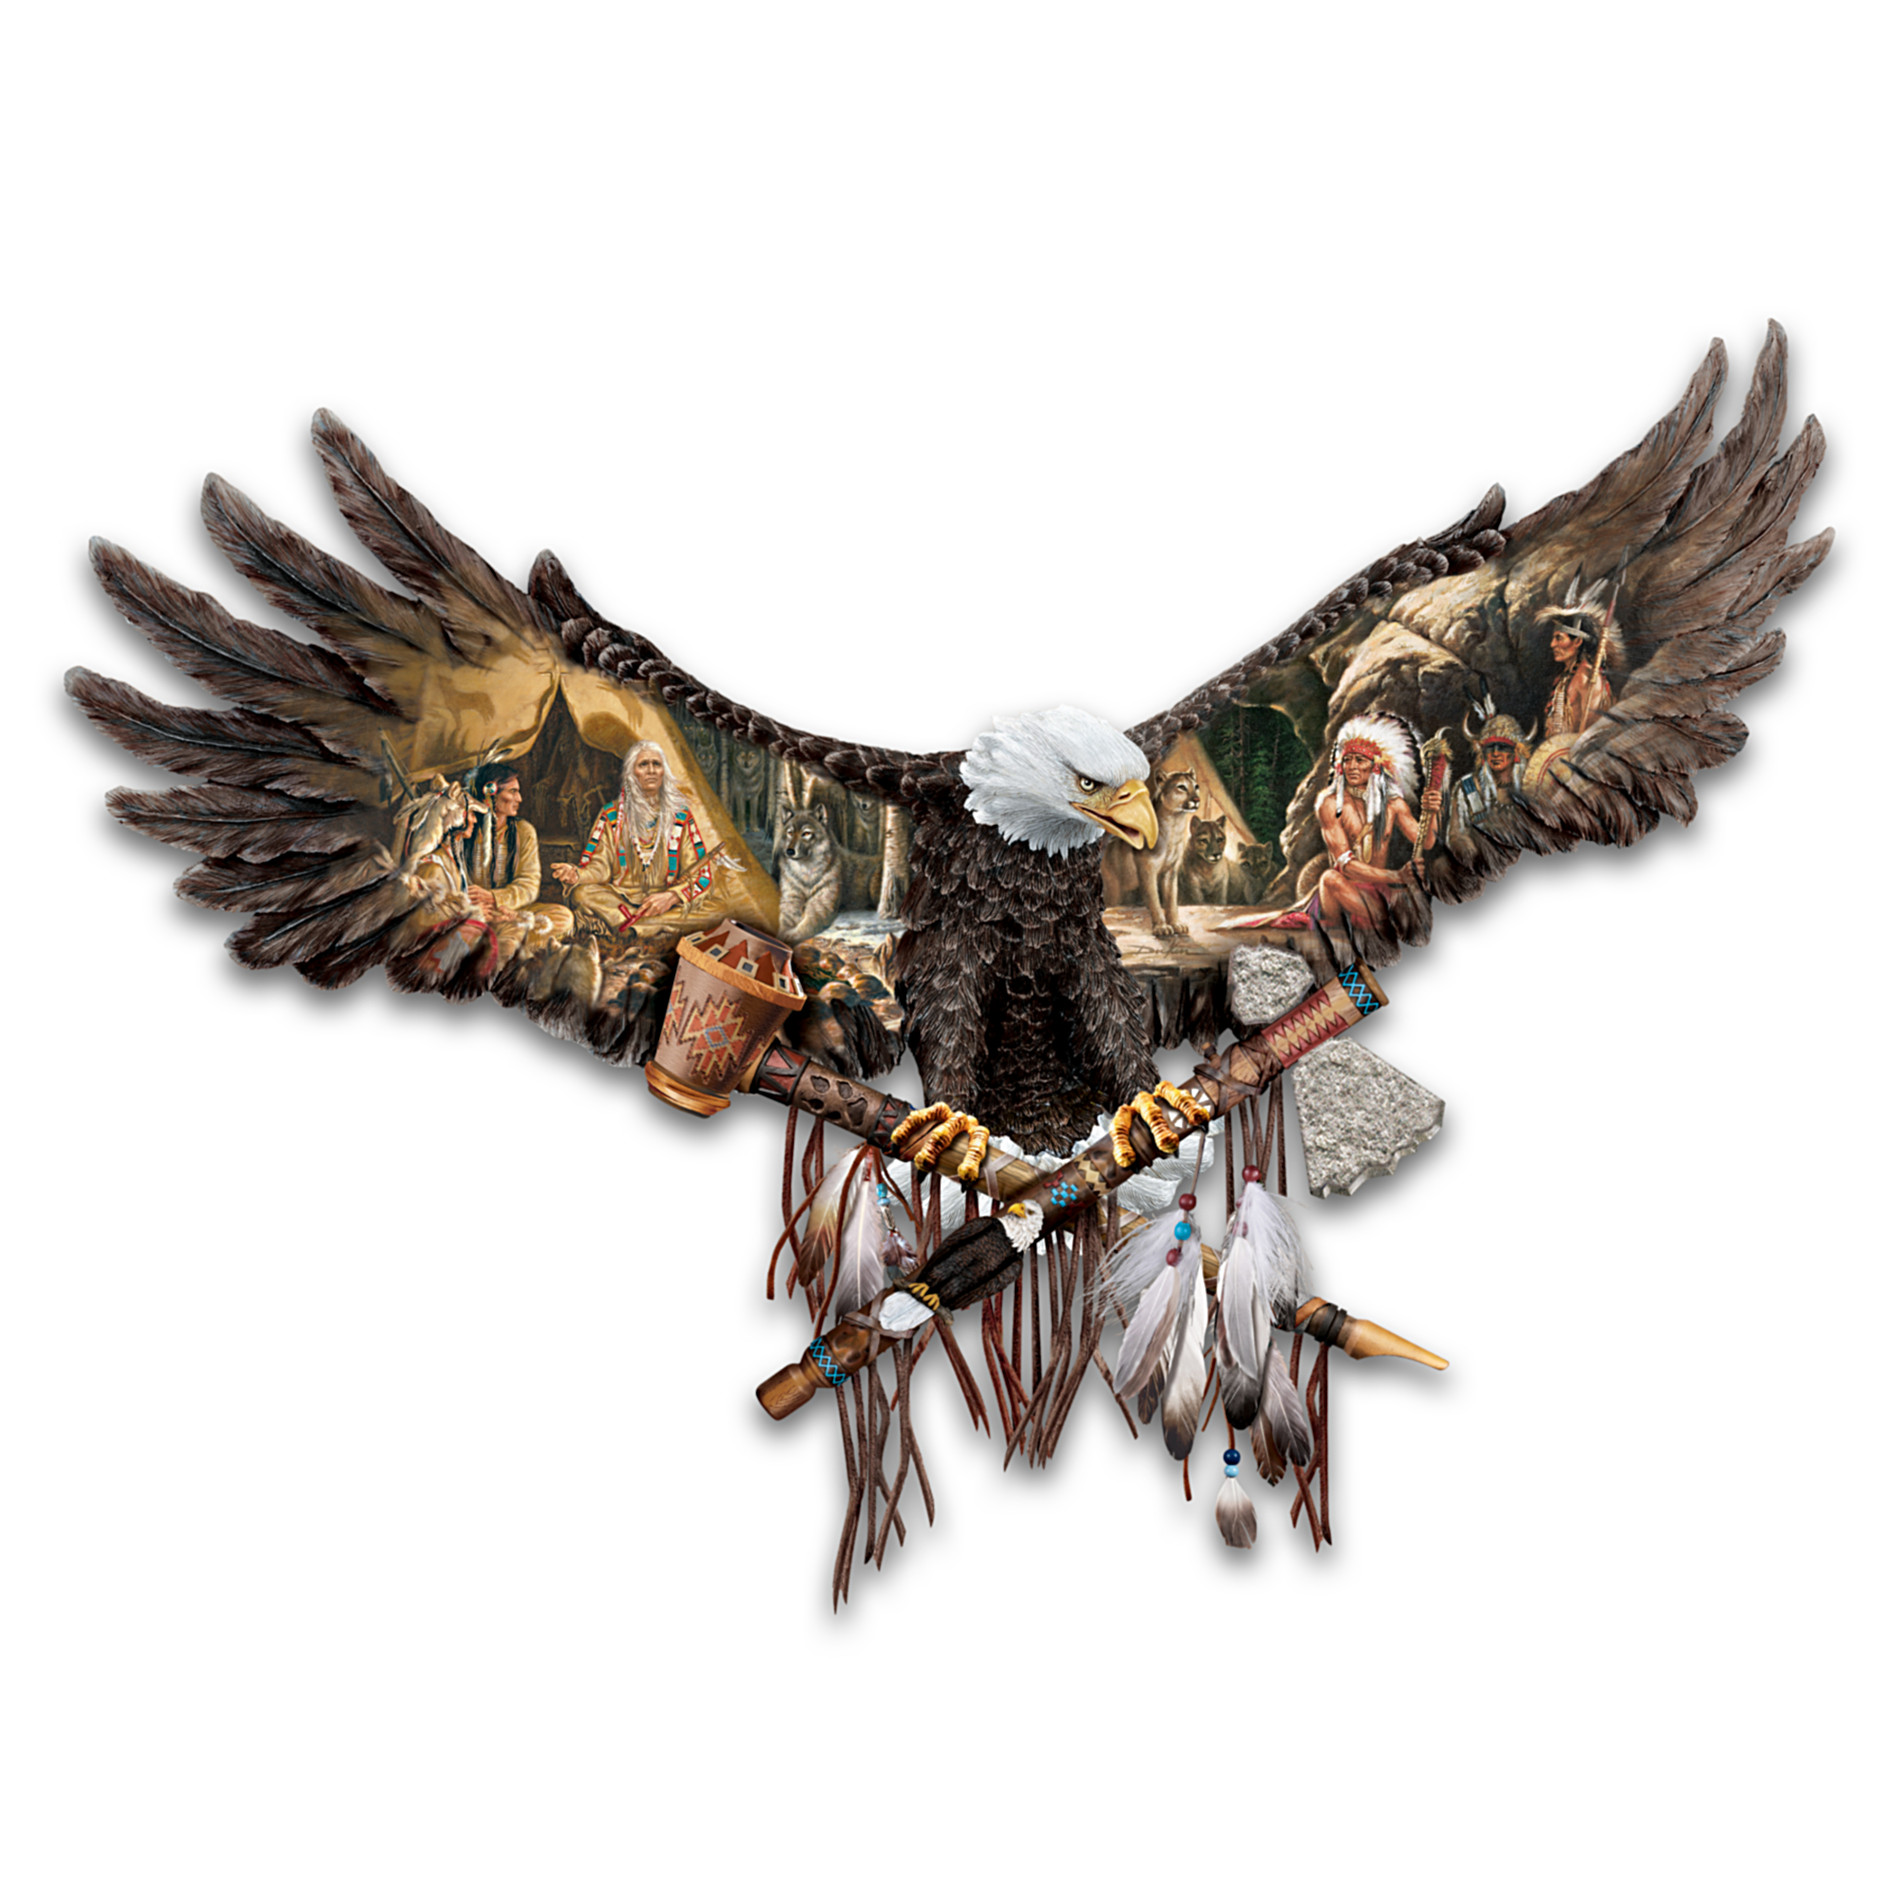 The Bradford Exchange War And Peace Bald Eagle Wall Decor Collection at Sears.com